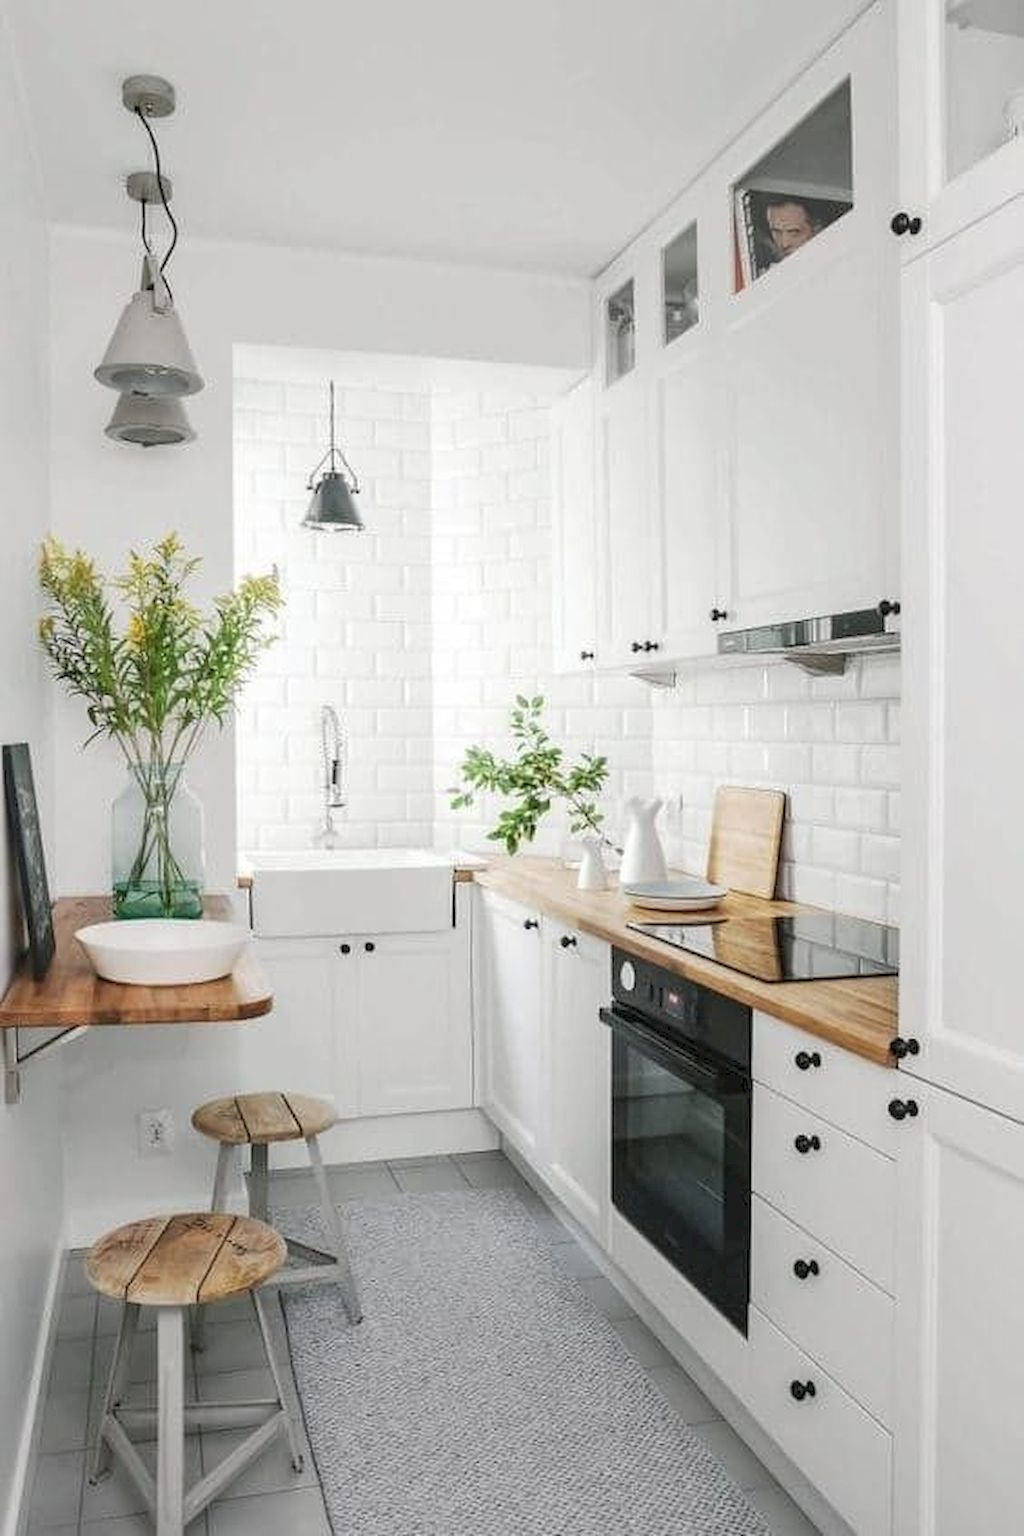 Nice 16+ Small Apartment Kitchen Ideas On A Budget https